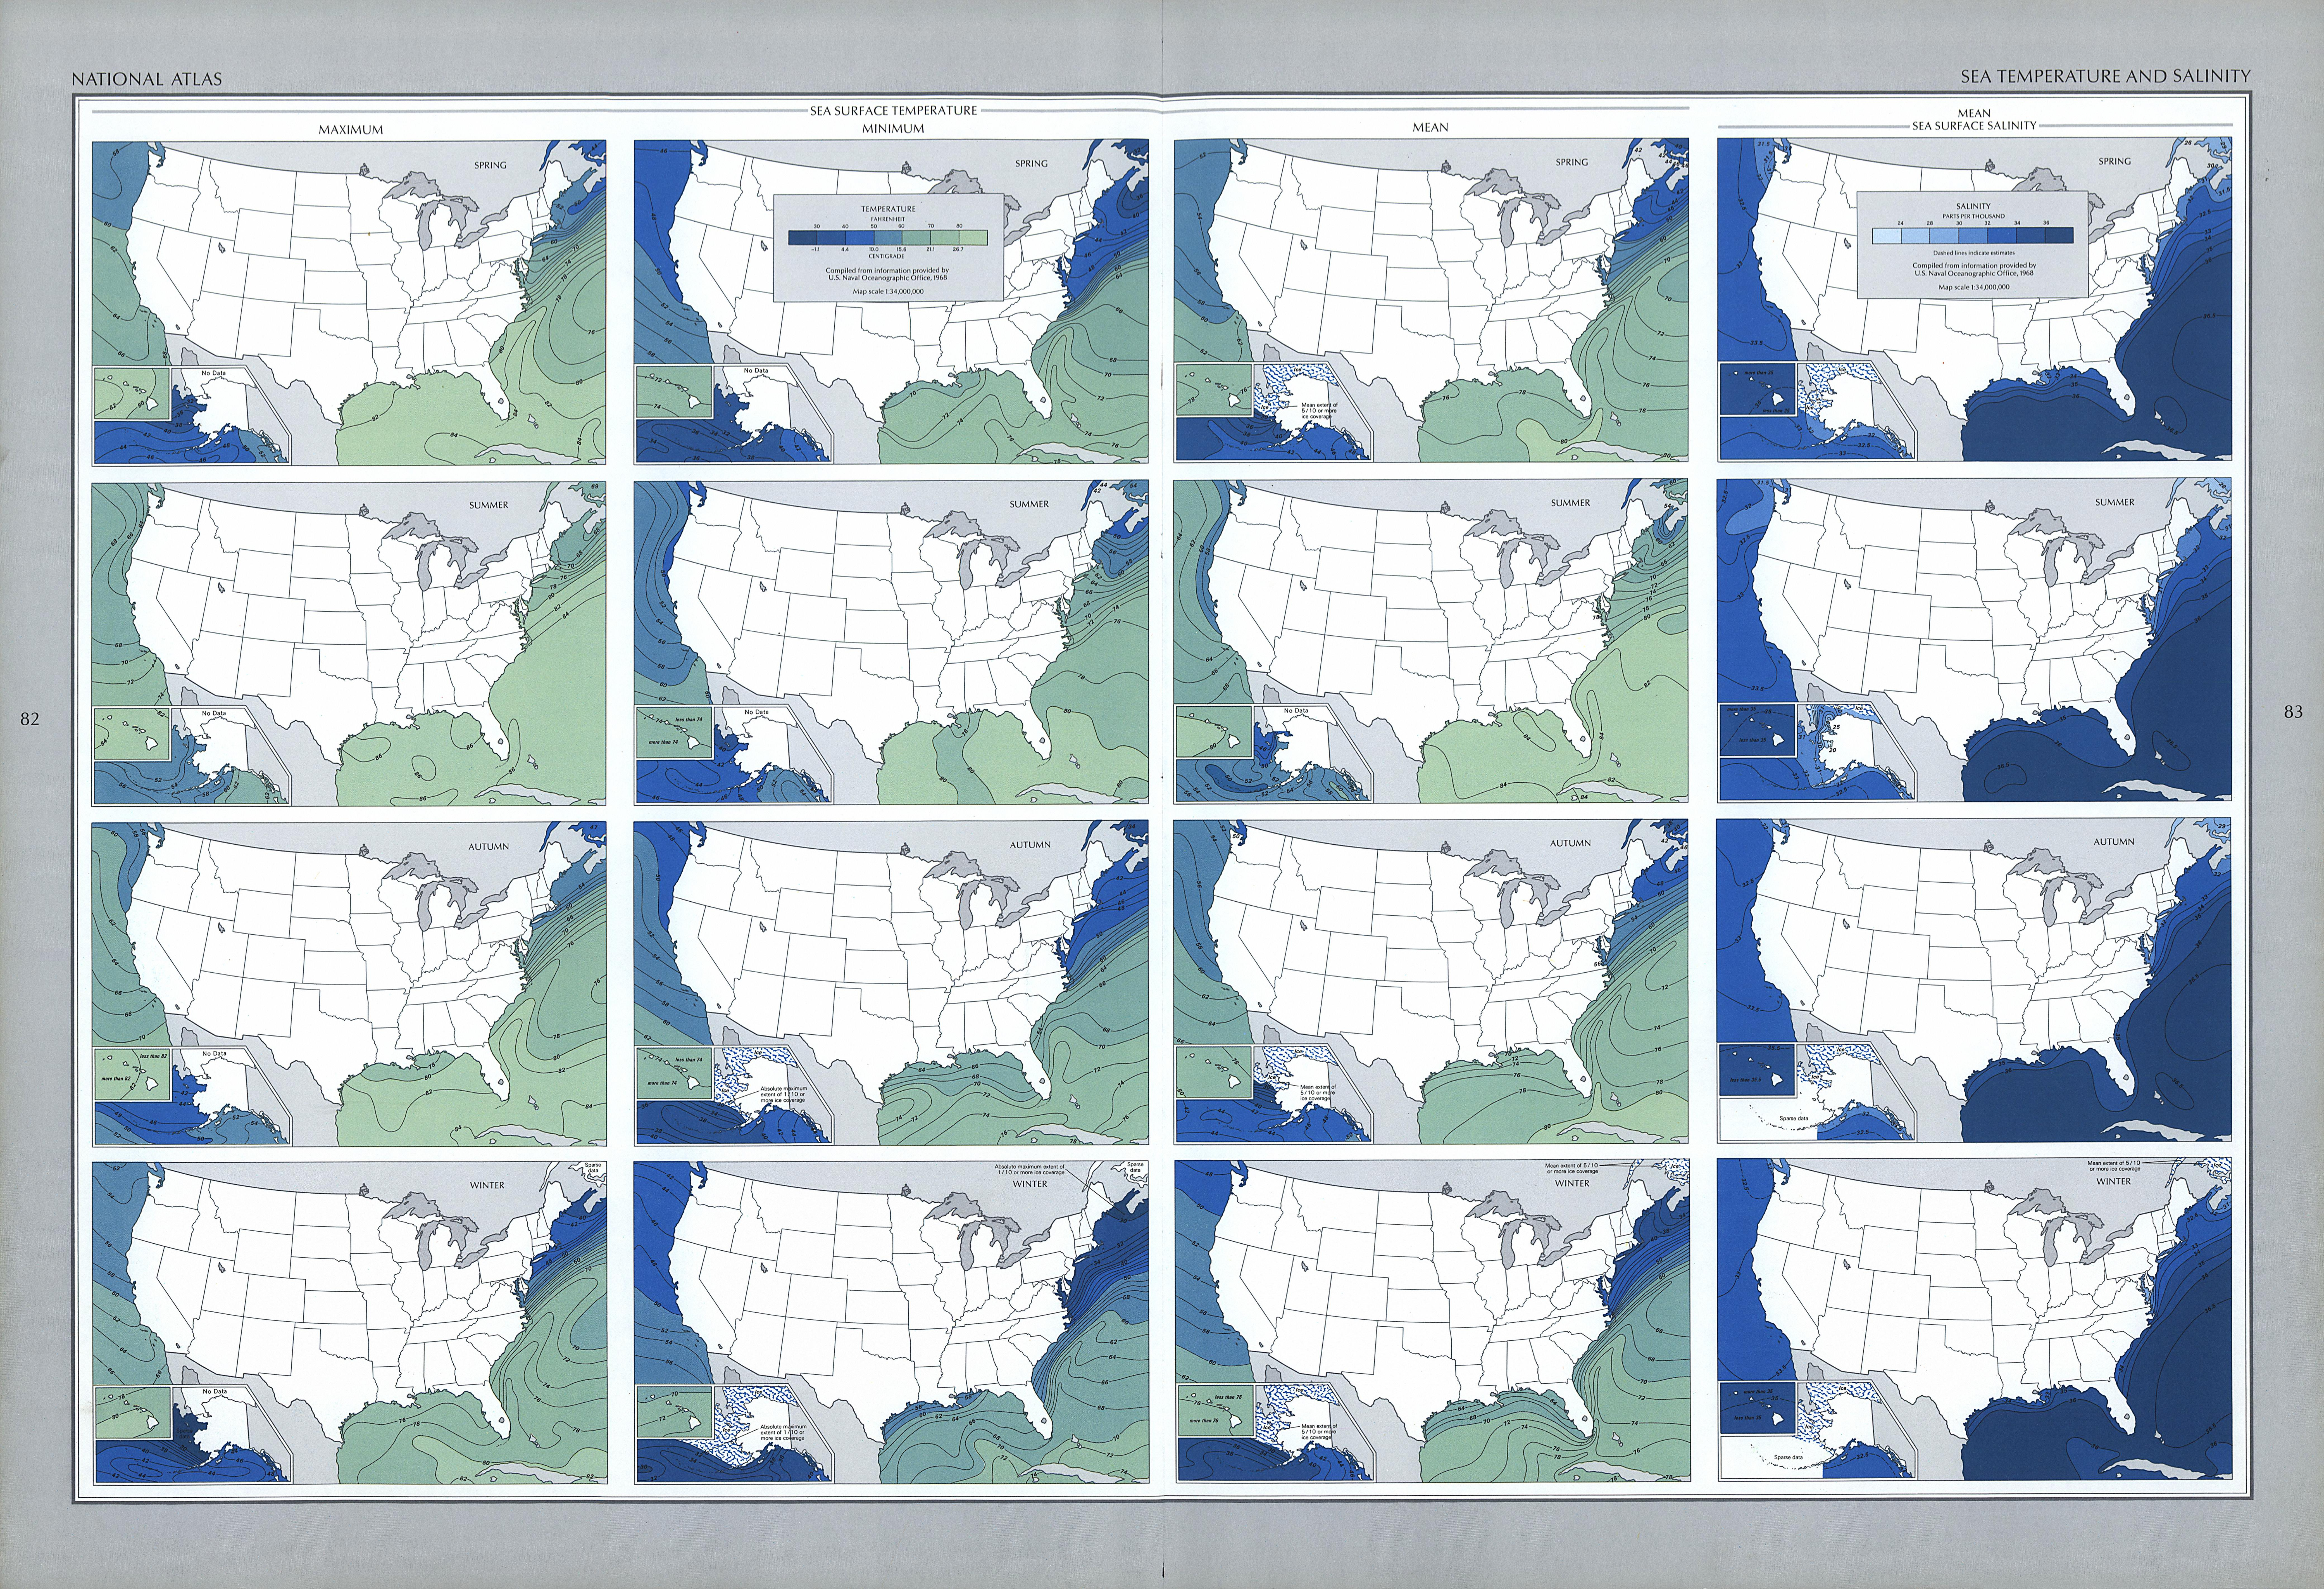 Map of Sea Temperature and Salinity, United States